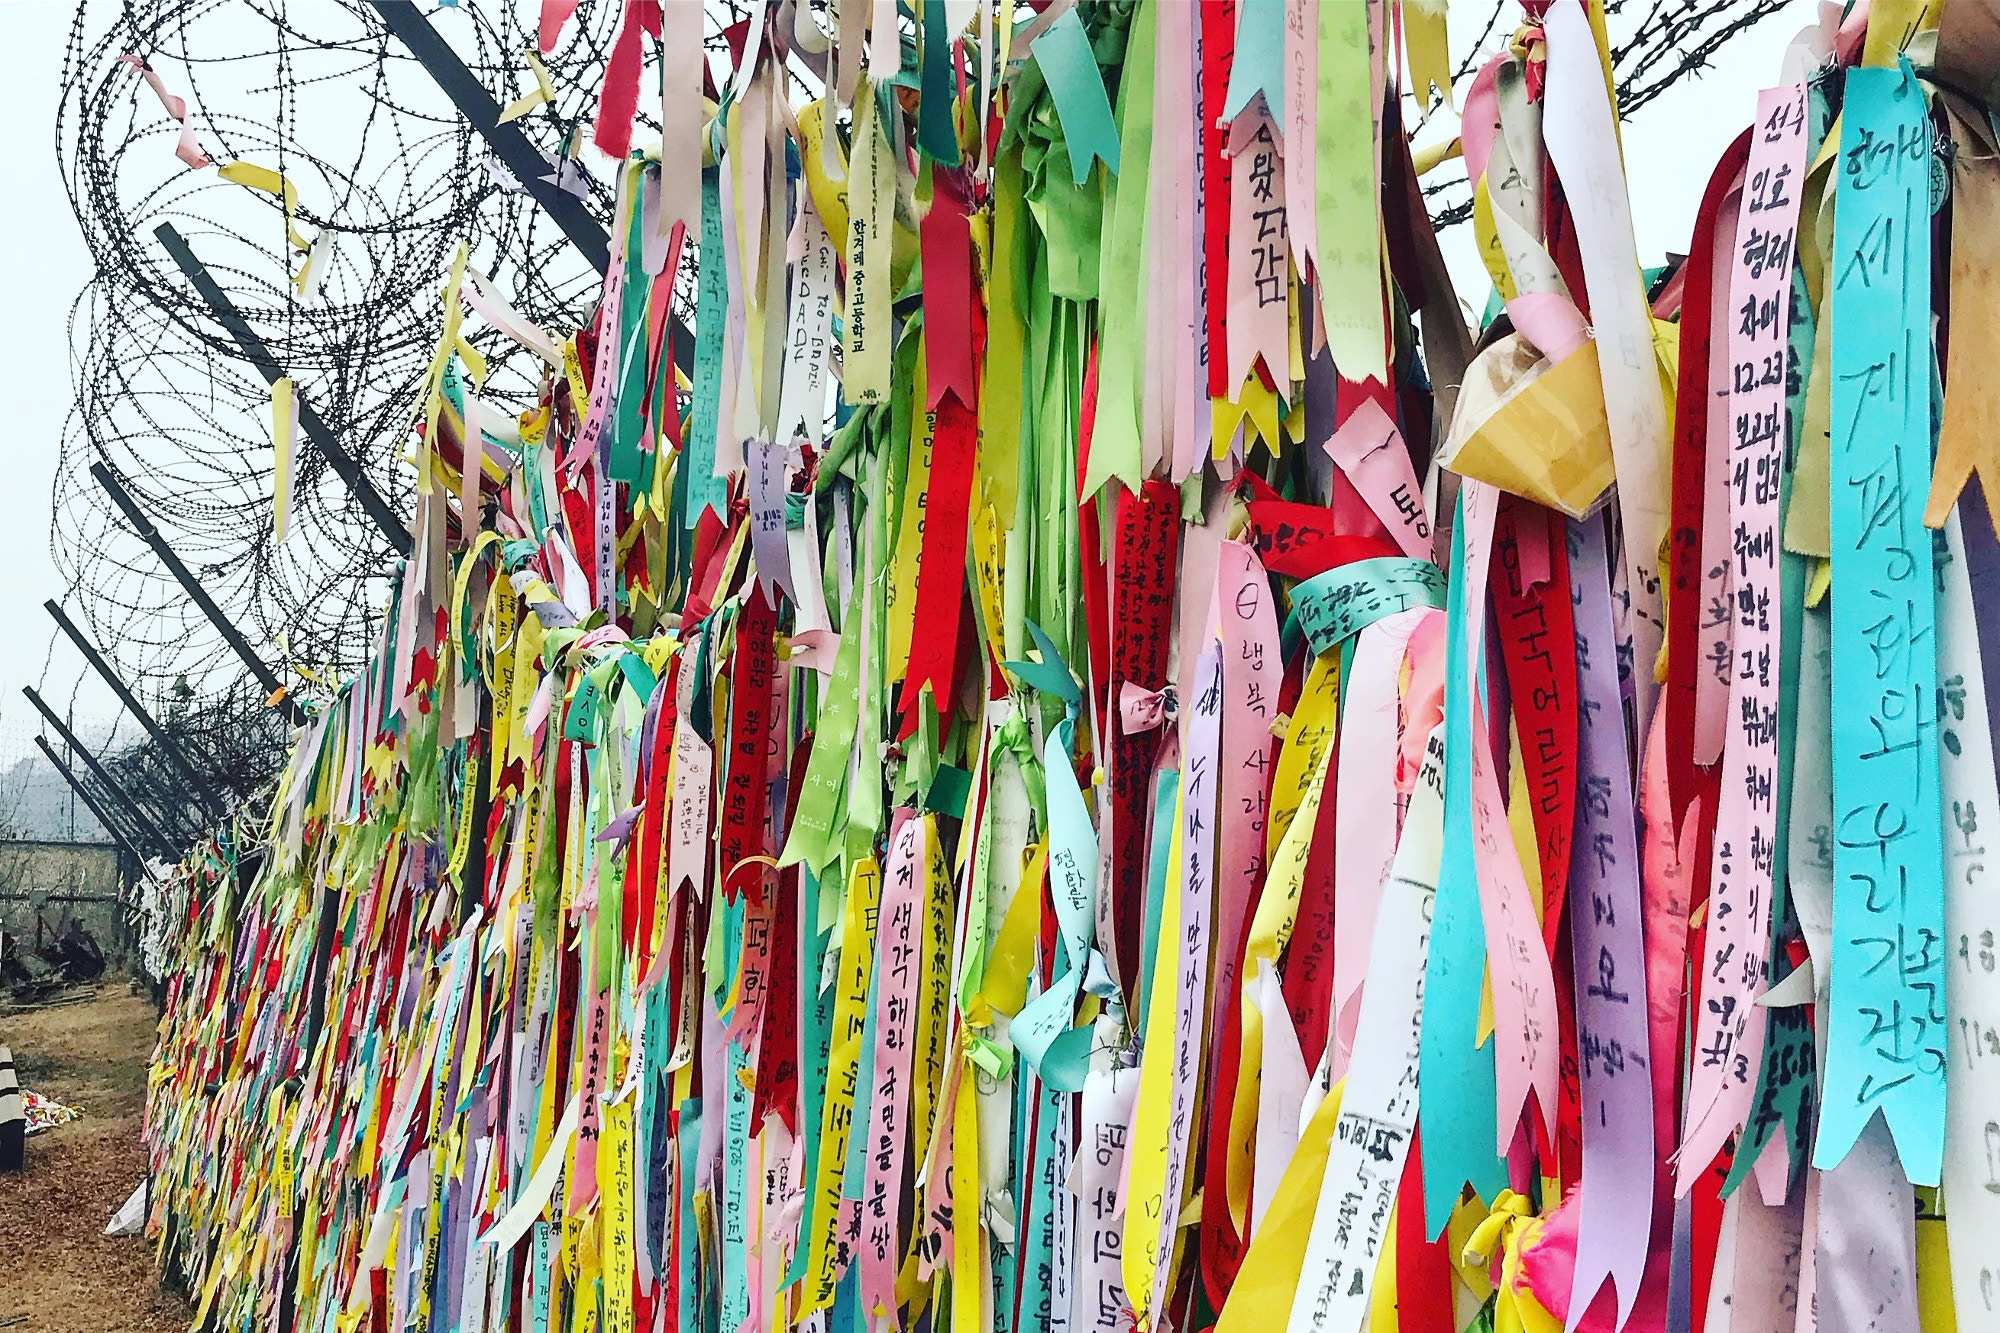 Peace ribbons at the Demilitarised Zone in South Korea